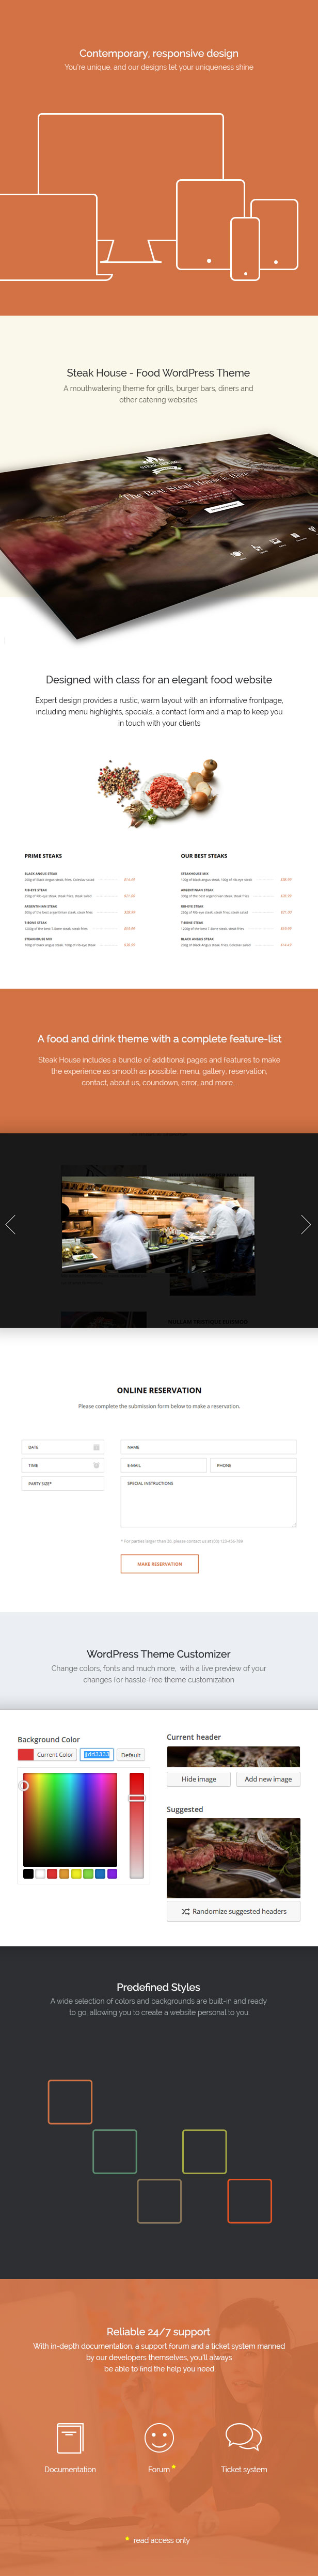 Steak House Food WordPress Theme (Food)